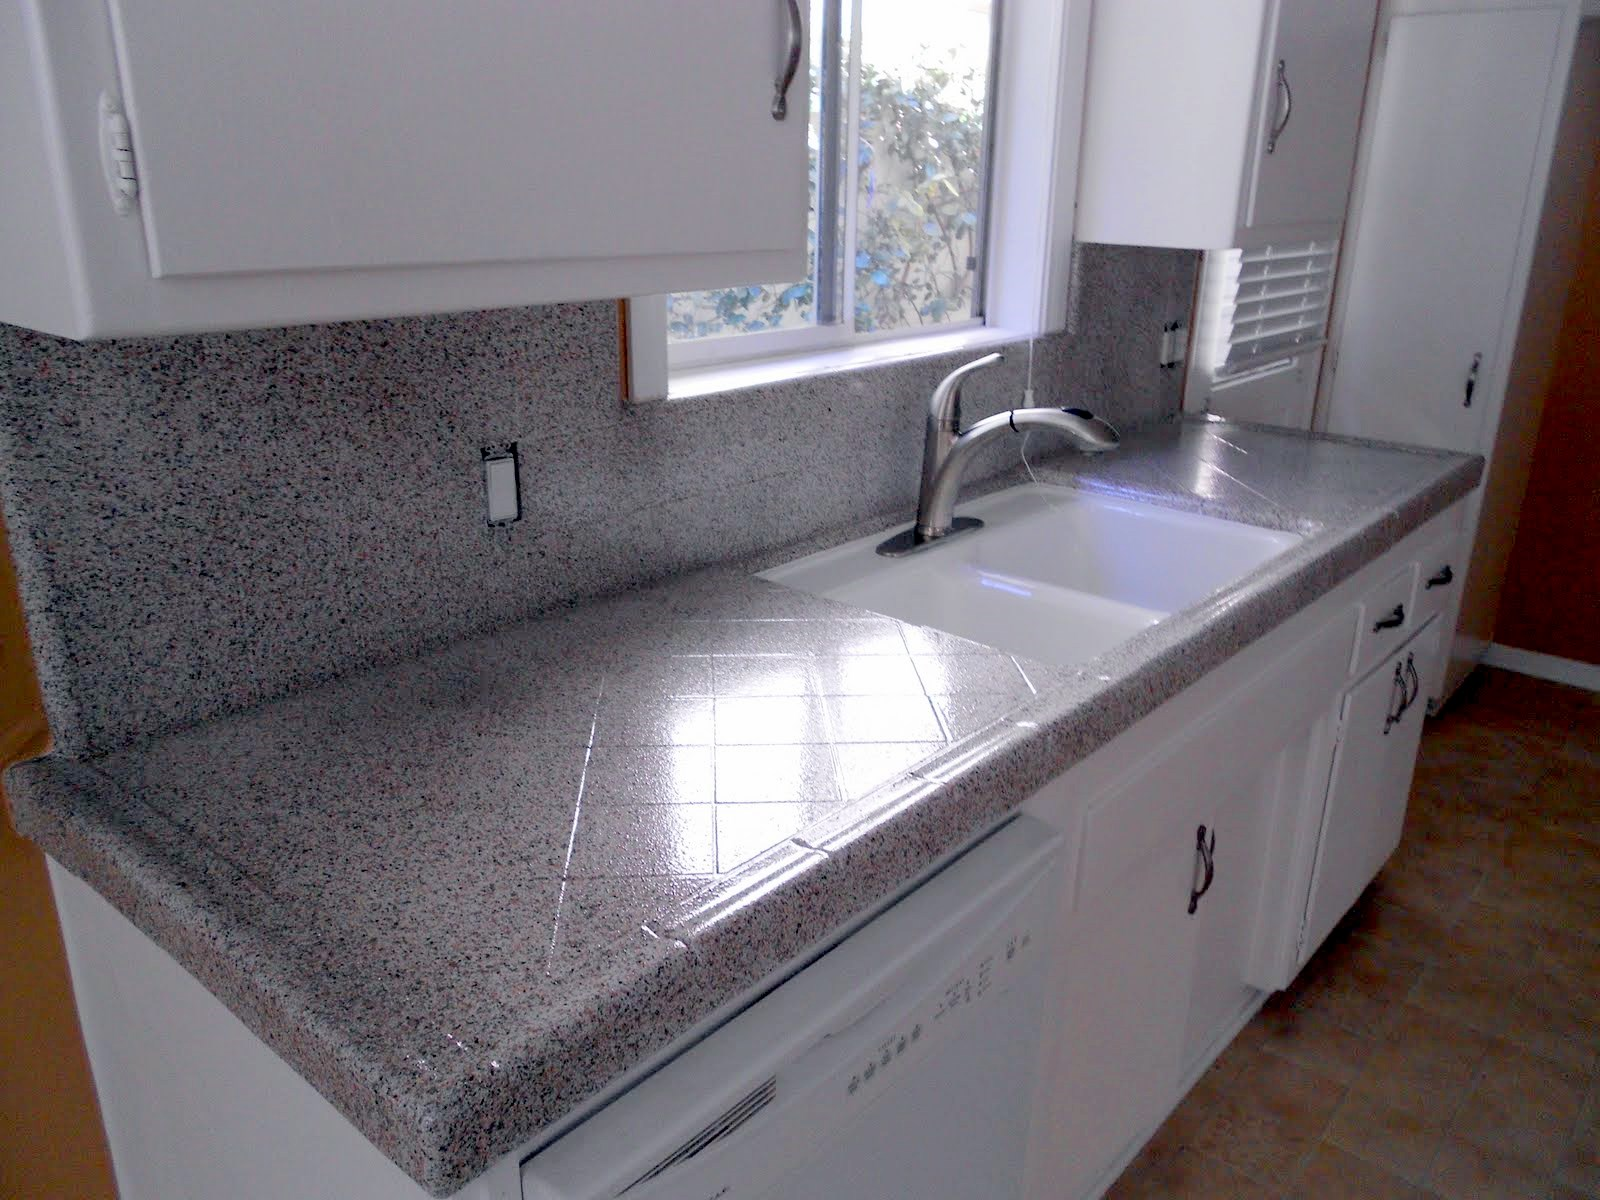 Kitchen Tile Countertop Bathtub And Countertop Refinishing